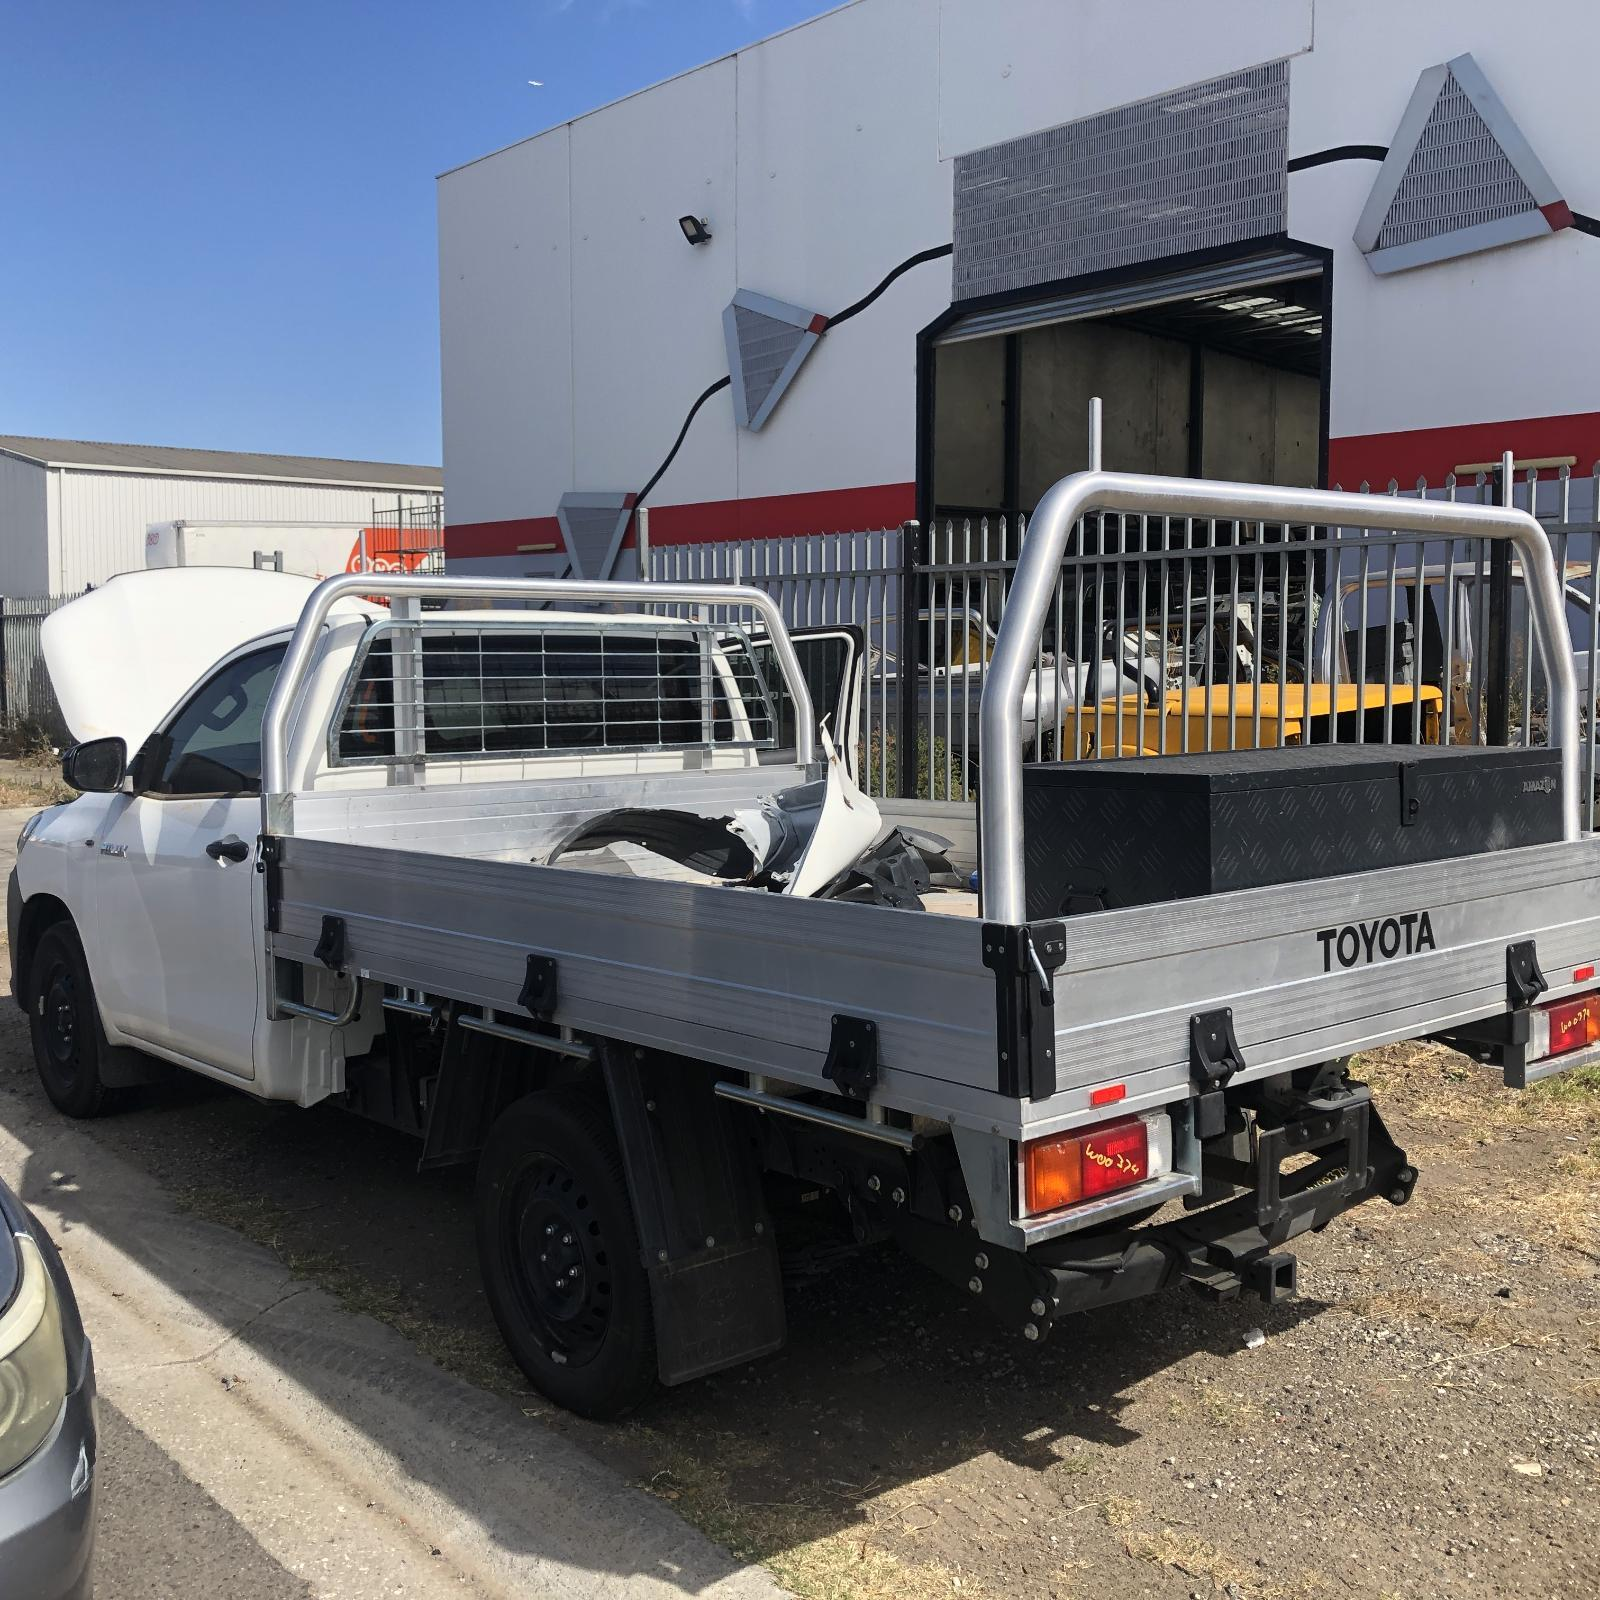 WHITE HILUX SINGLE CAB 2TR-FE AUTOMATIC 2WD TRANSMISSION FROM - 09/15-CURRENT: 12999